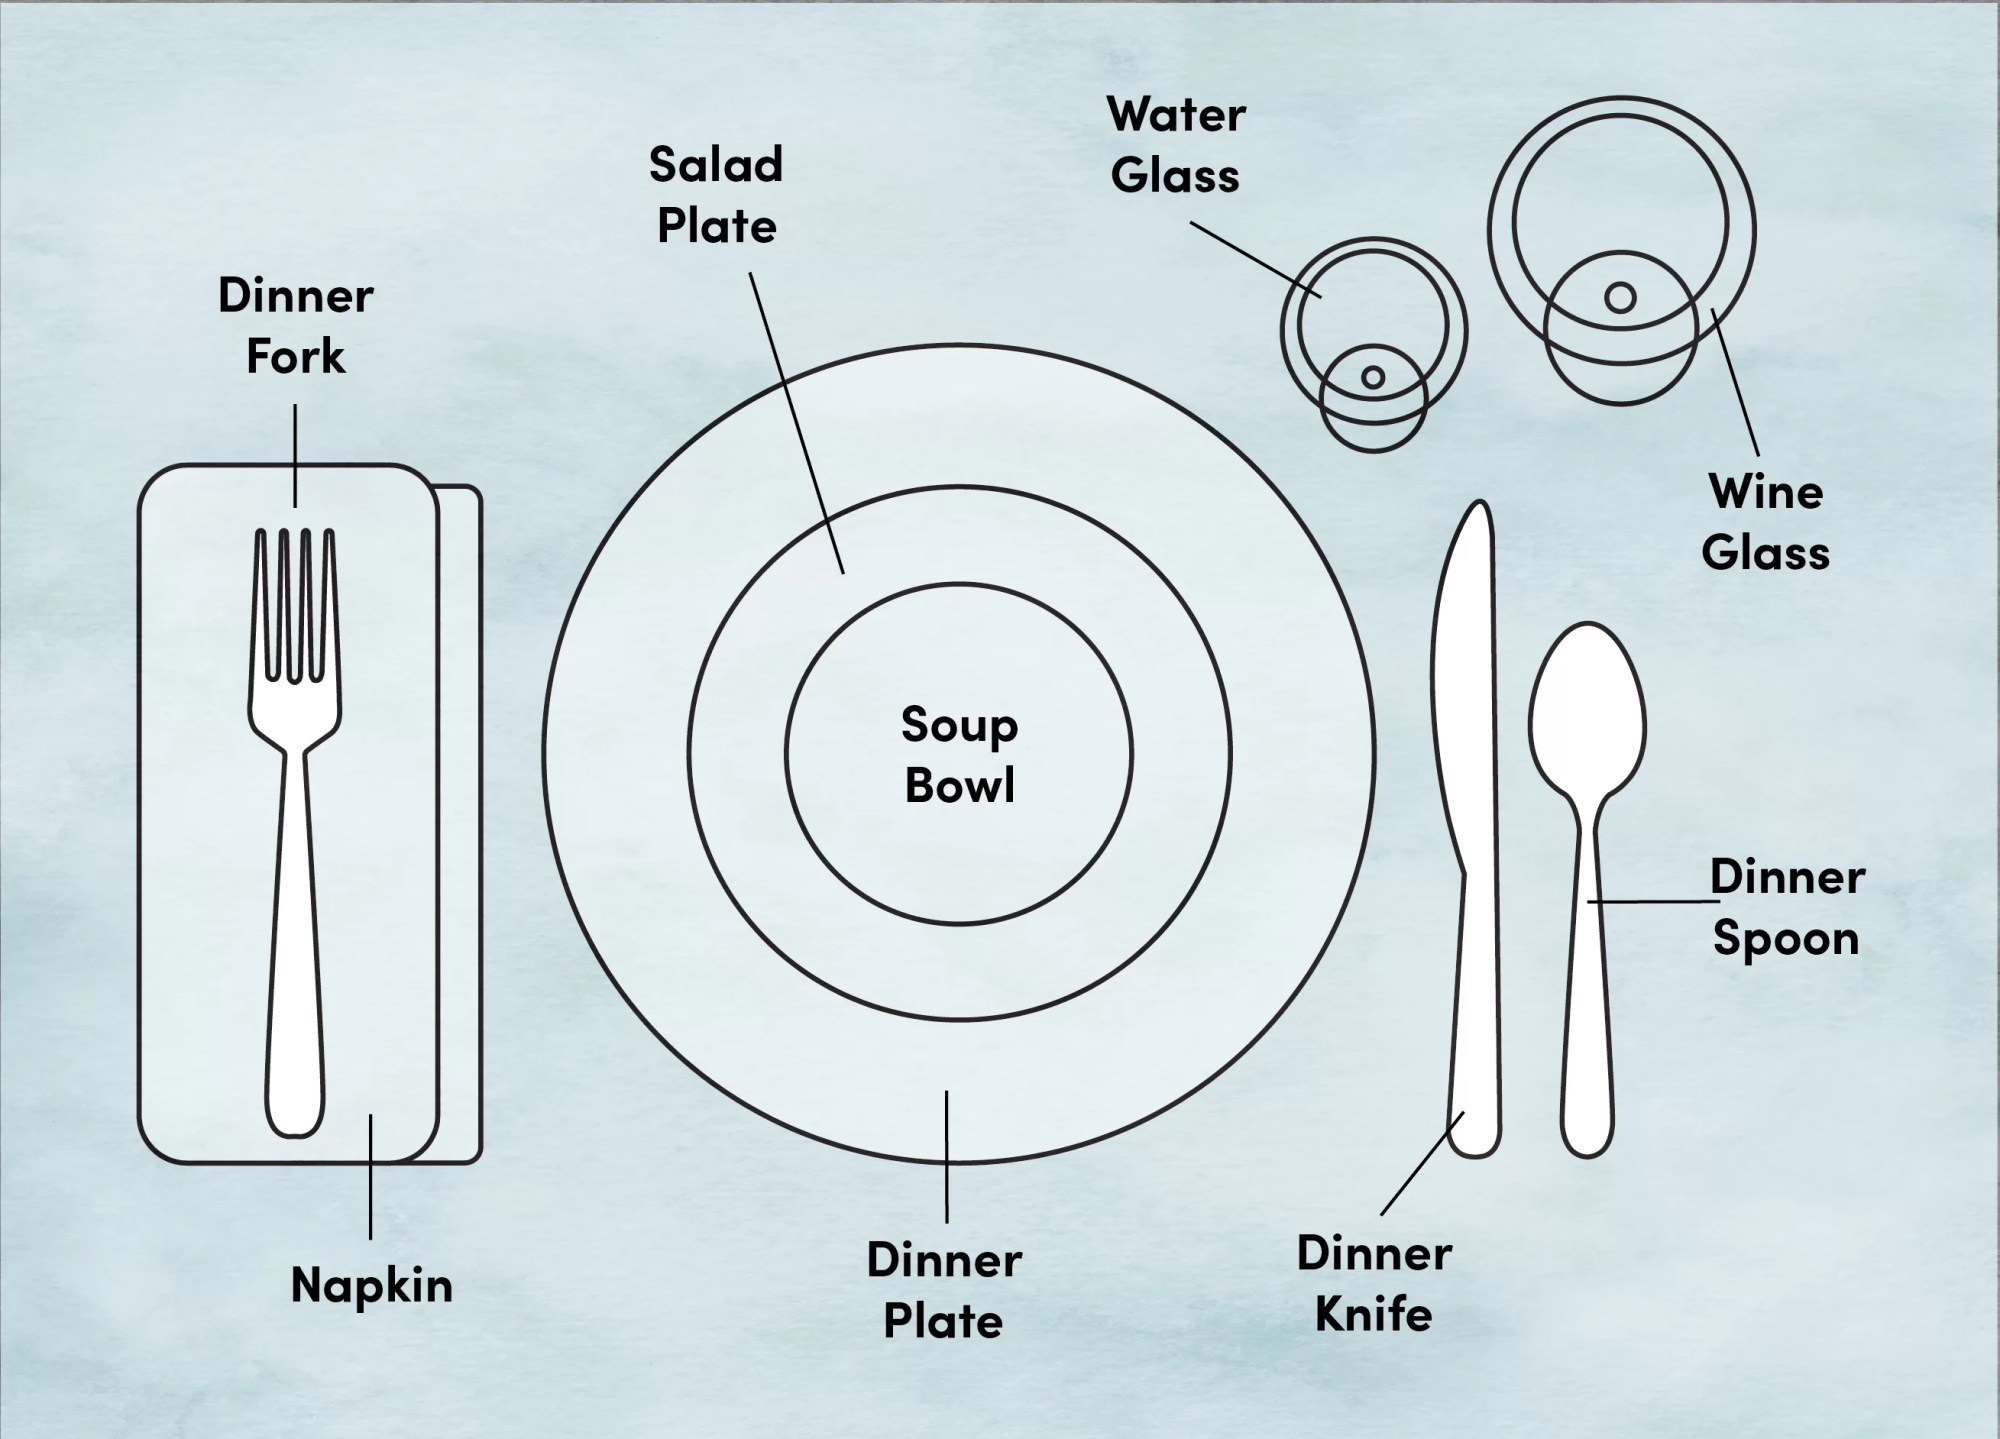 hight resolution of etiquette training proper place and table setting diagram wayfair casual place setting